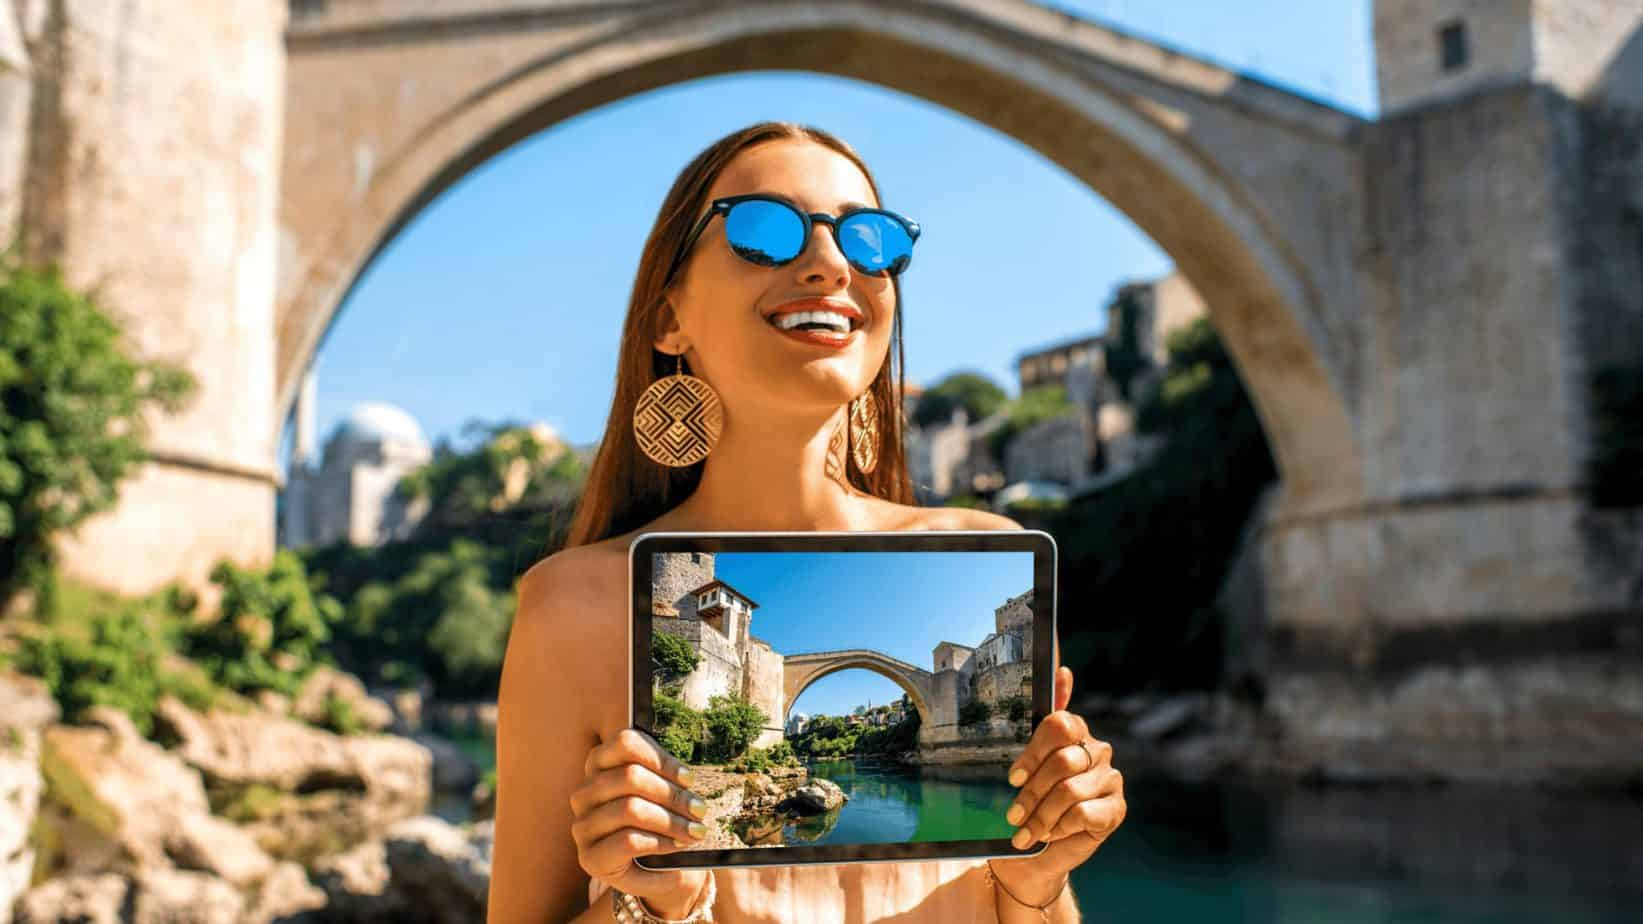 Tourist holding a tablet of the photo of a bridge that is behind her.